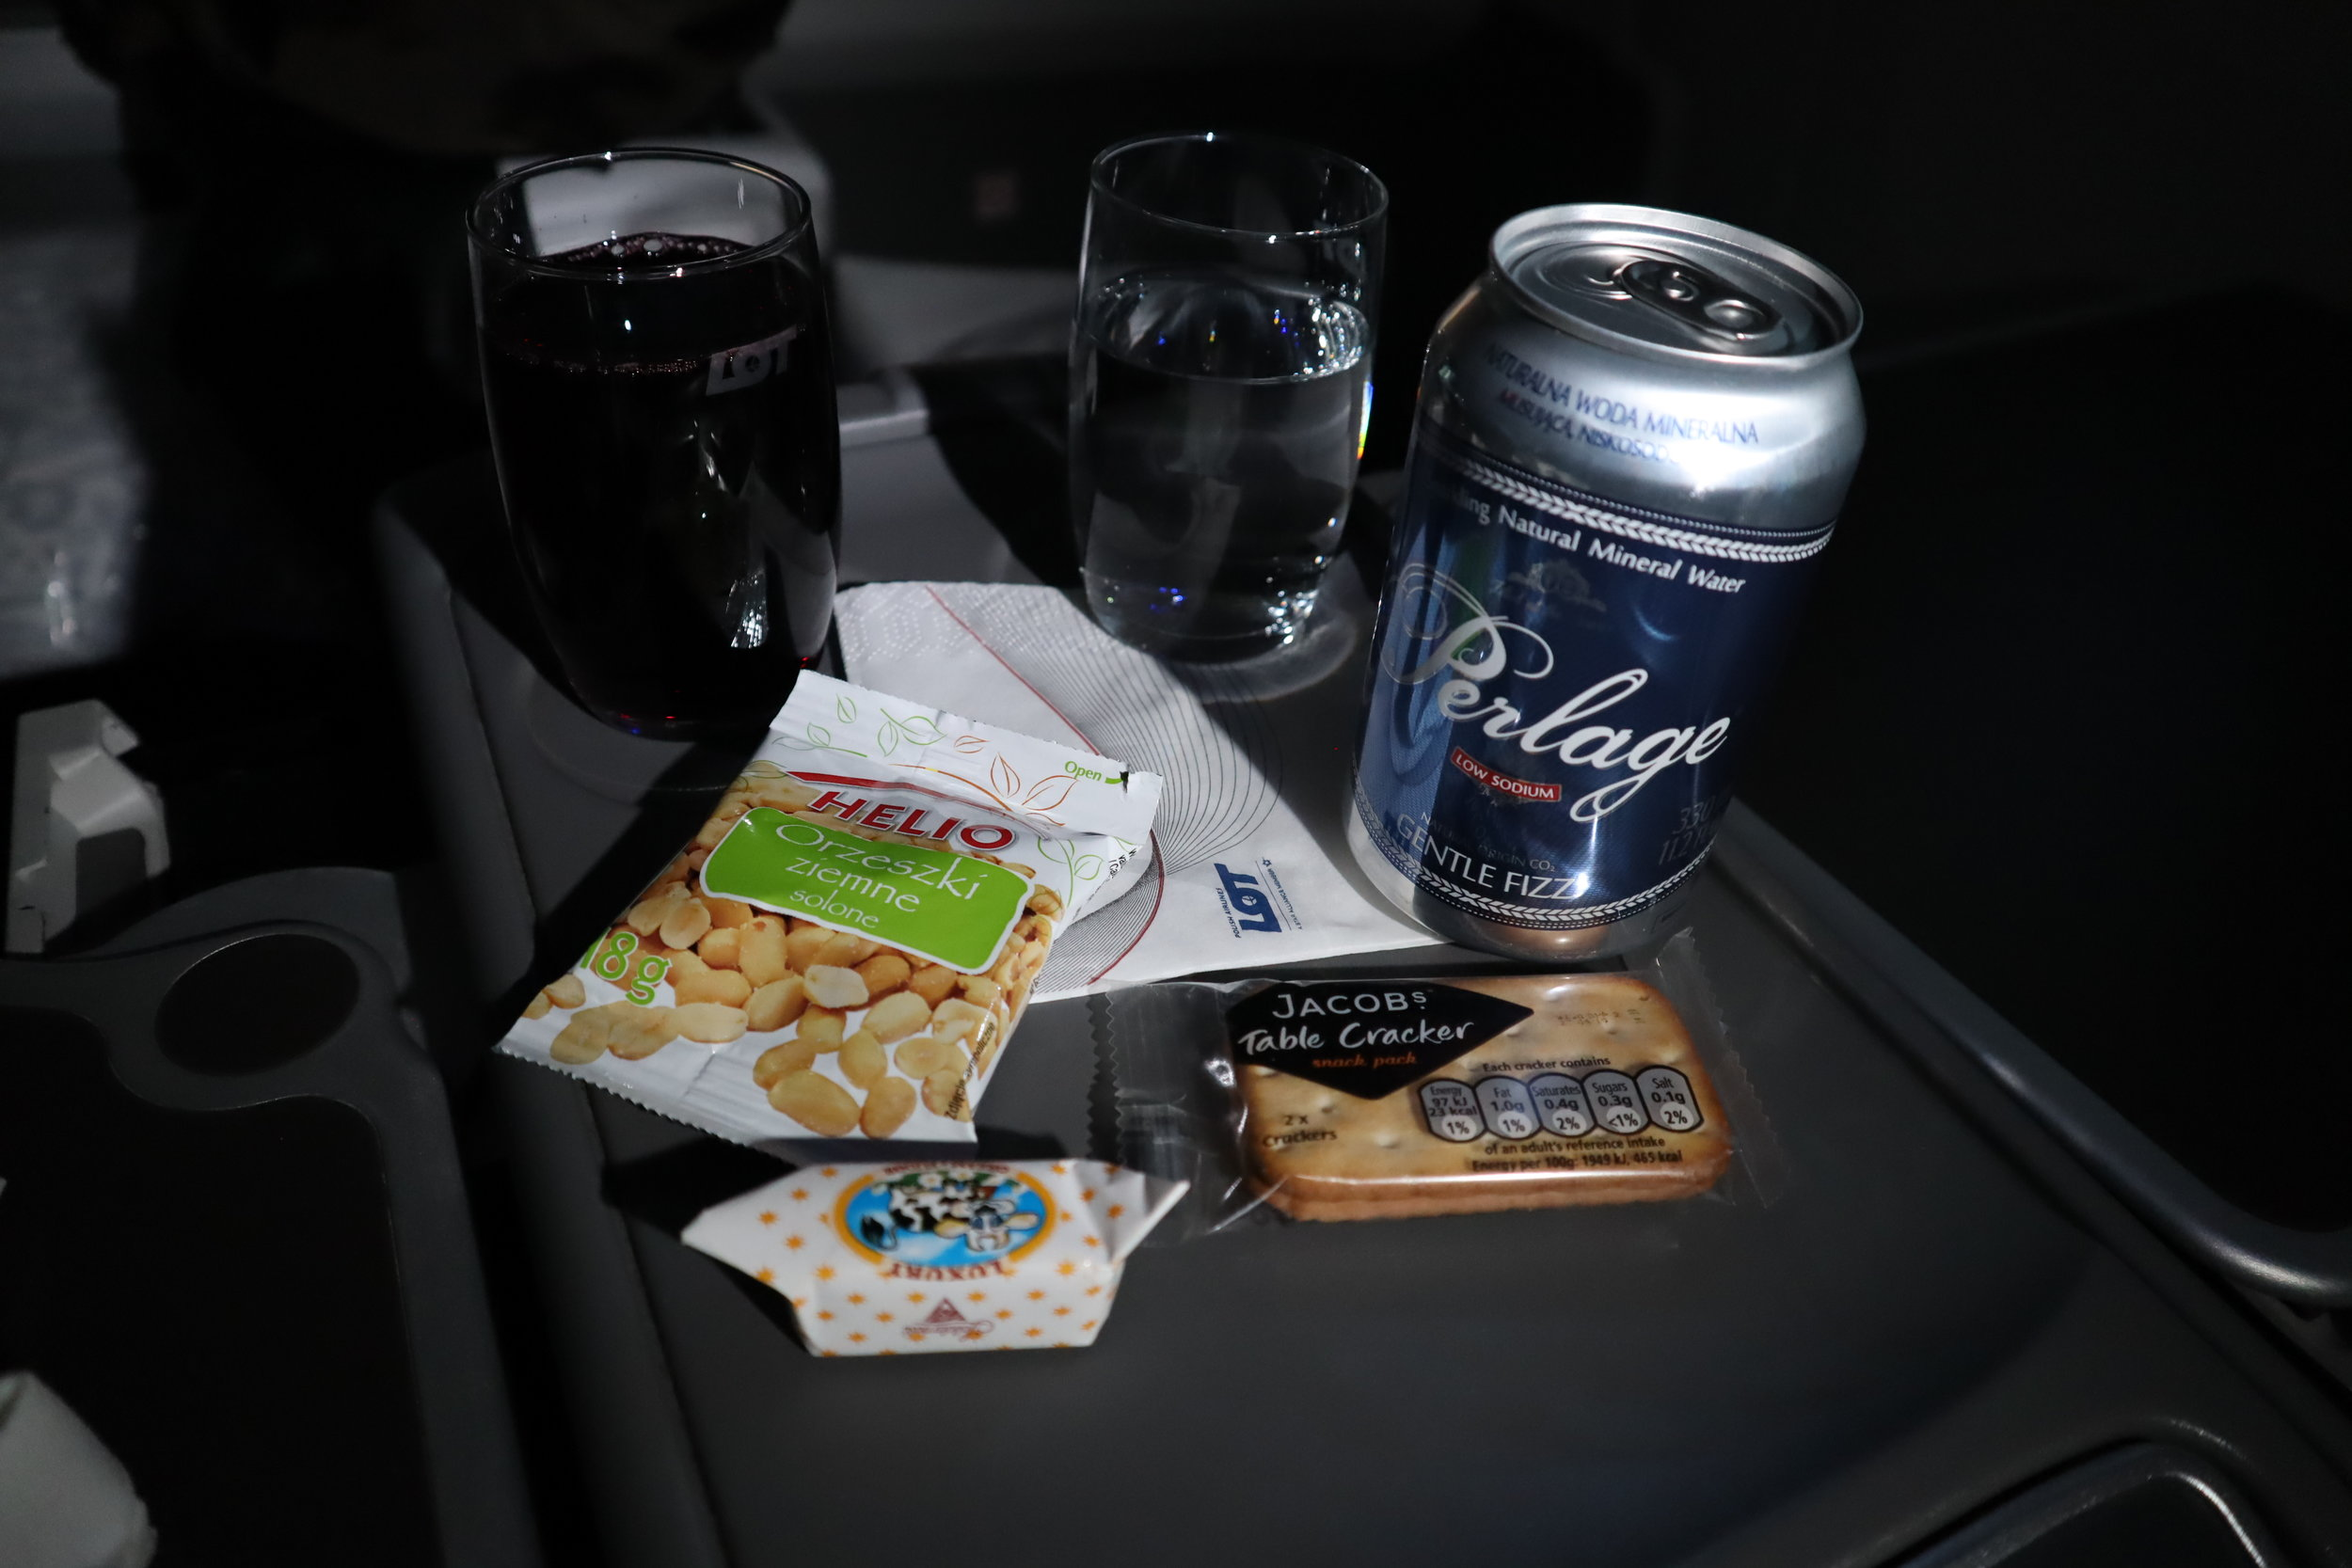 LOT Polish Airlines business class – Wine and snacks